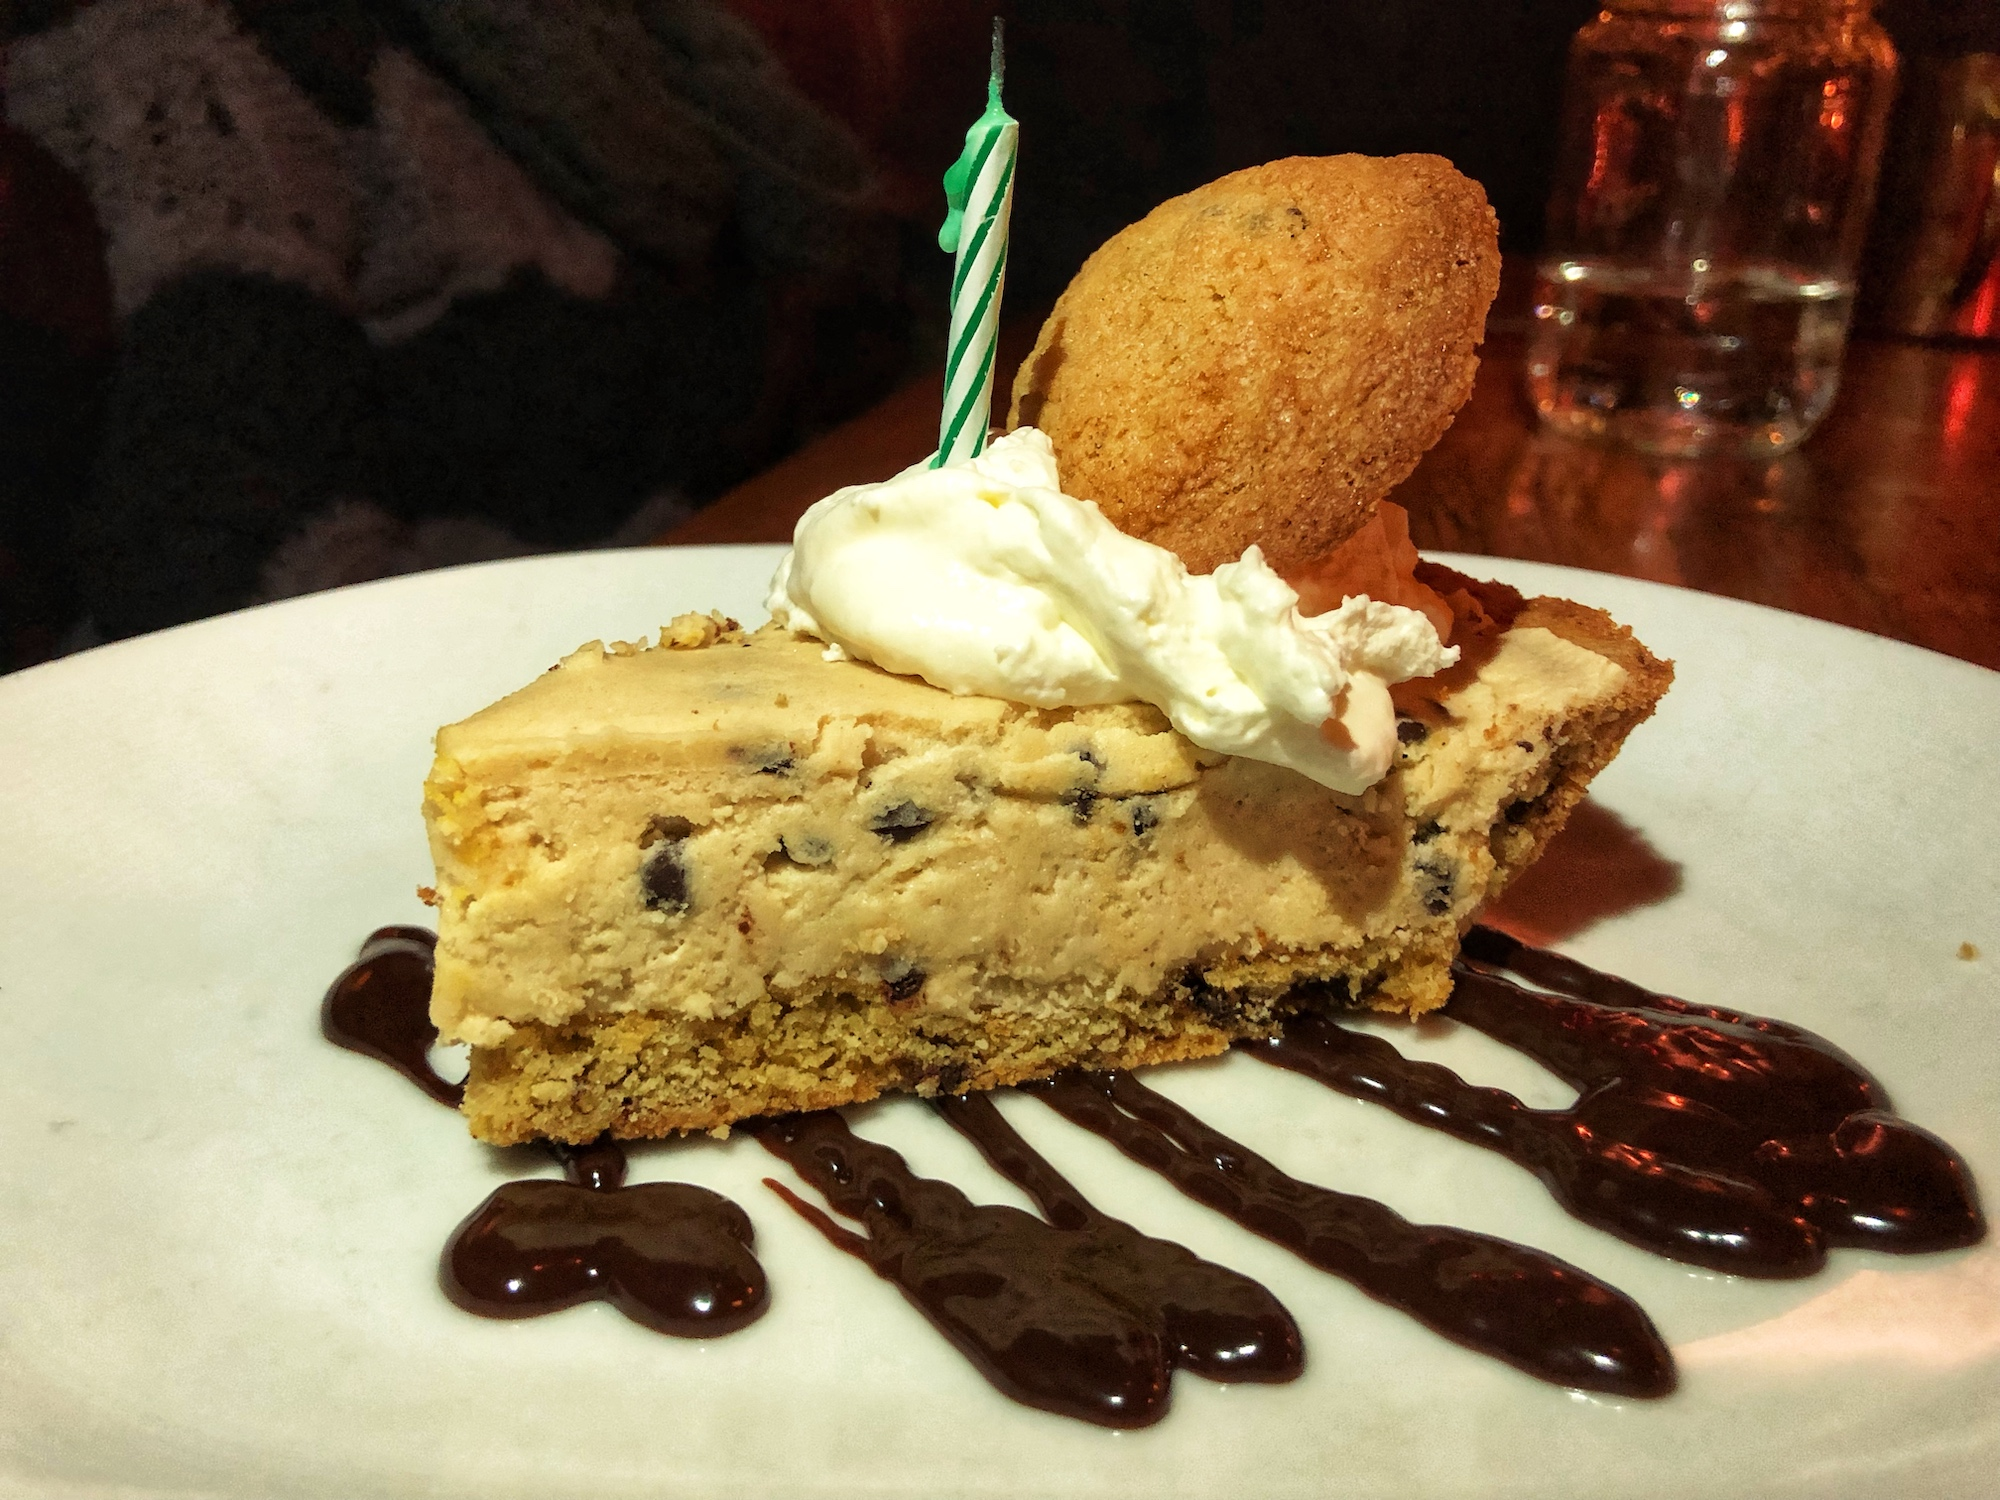 Rotating Pie selection available! This is the cookie dough pie